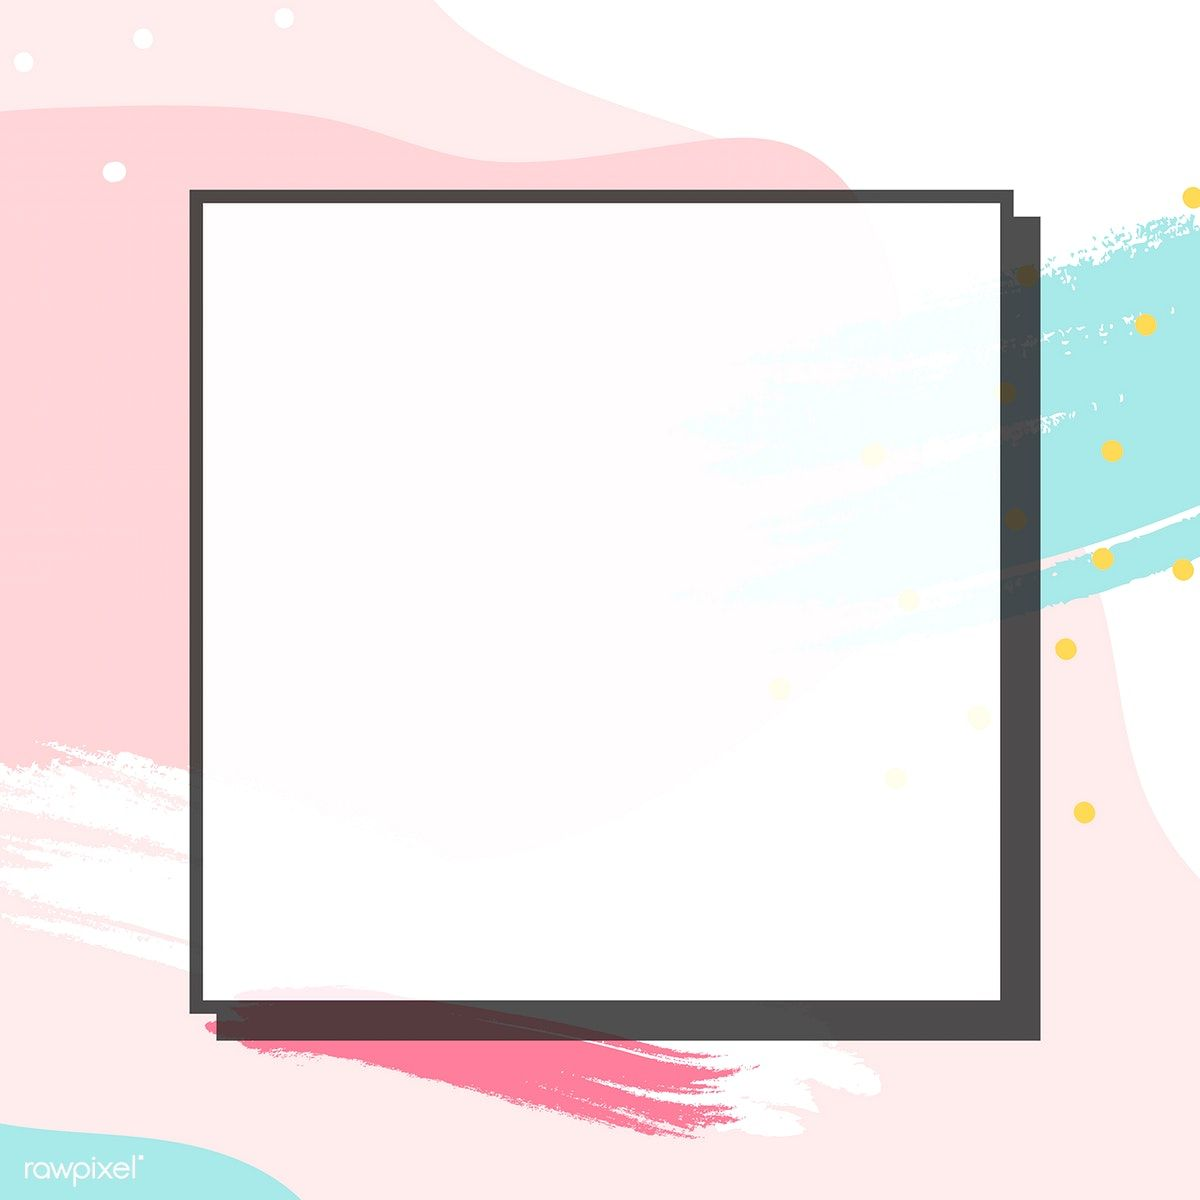 Download premium vector of Blank square pastel Memphis frame.